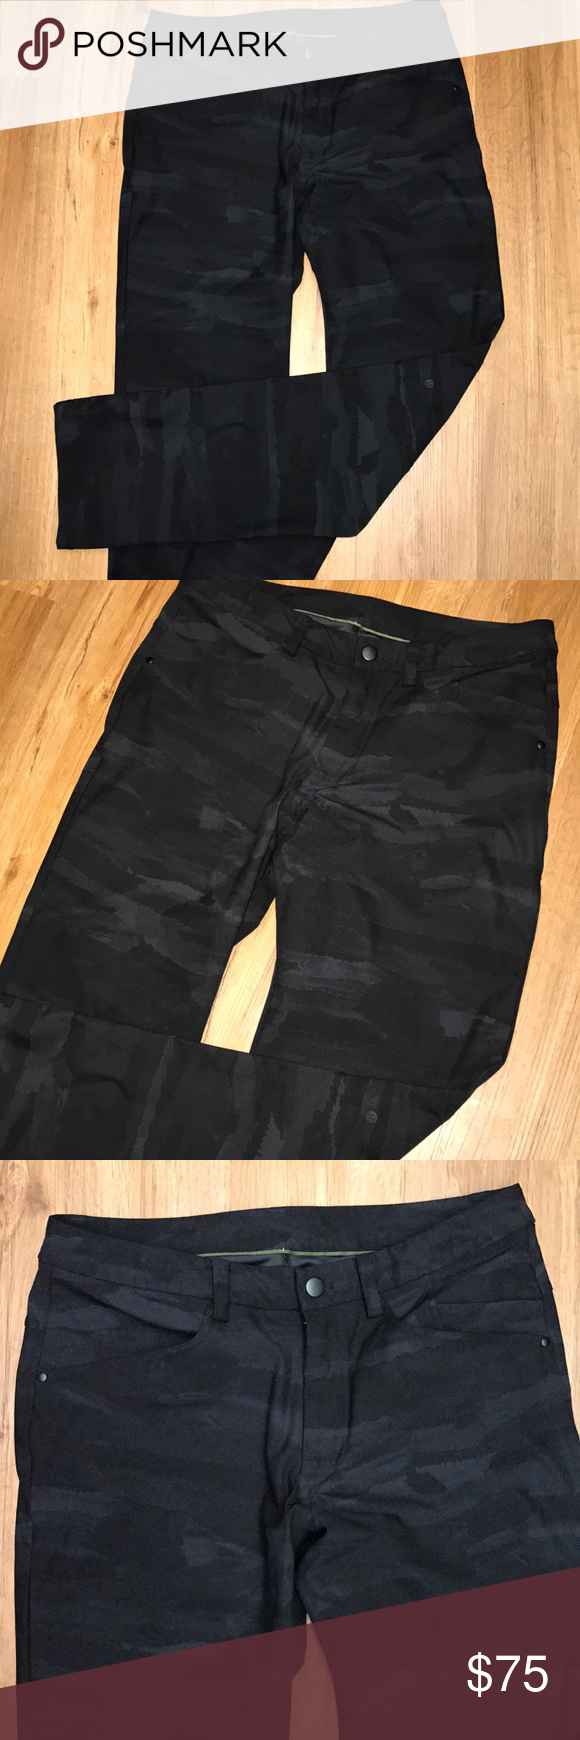 b4d2d3e3e2eaff Lululemon men's ABC pants black camouflage 34 Used only Once excellent  condition size 34 inseam 34